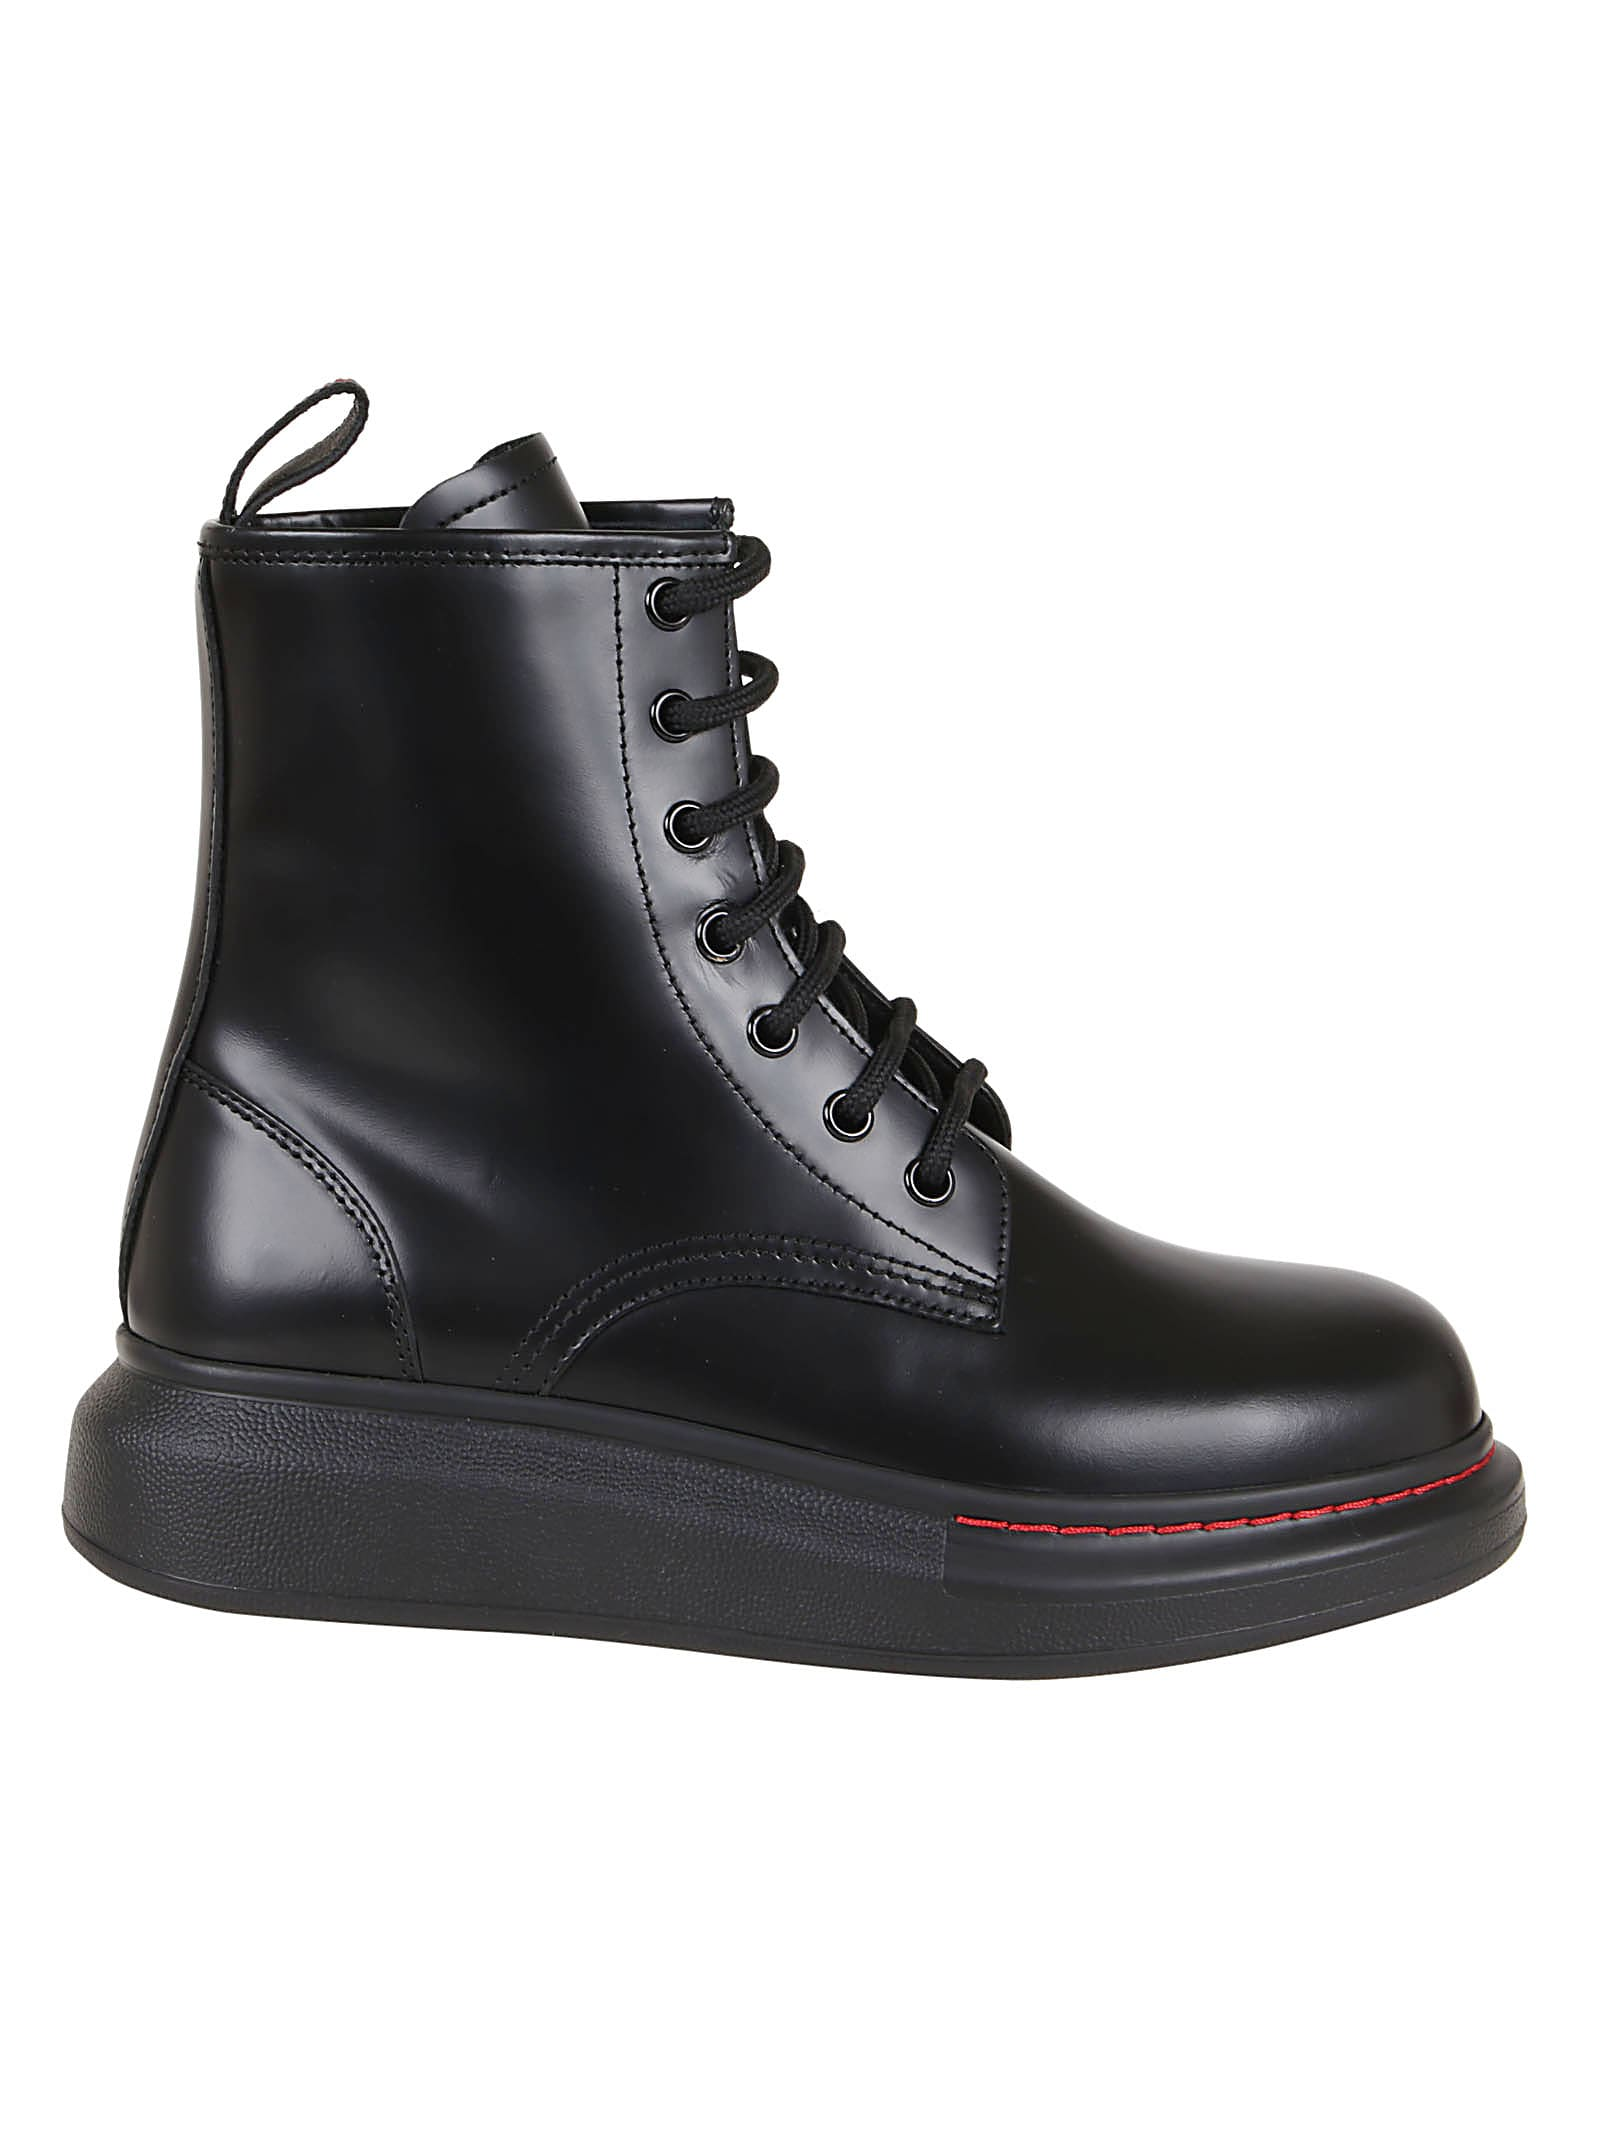 Buy Alexander McQueen Boots Hybrid online, shop Alexander McQueen shoes with free shipping